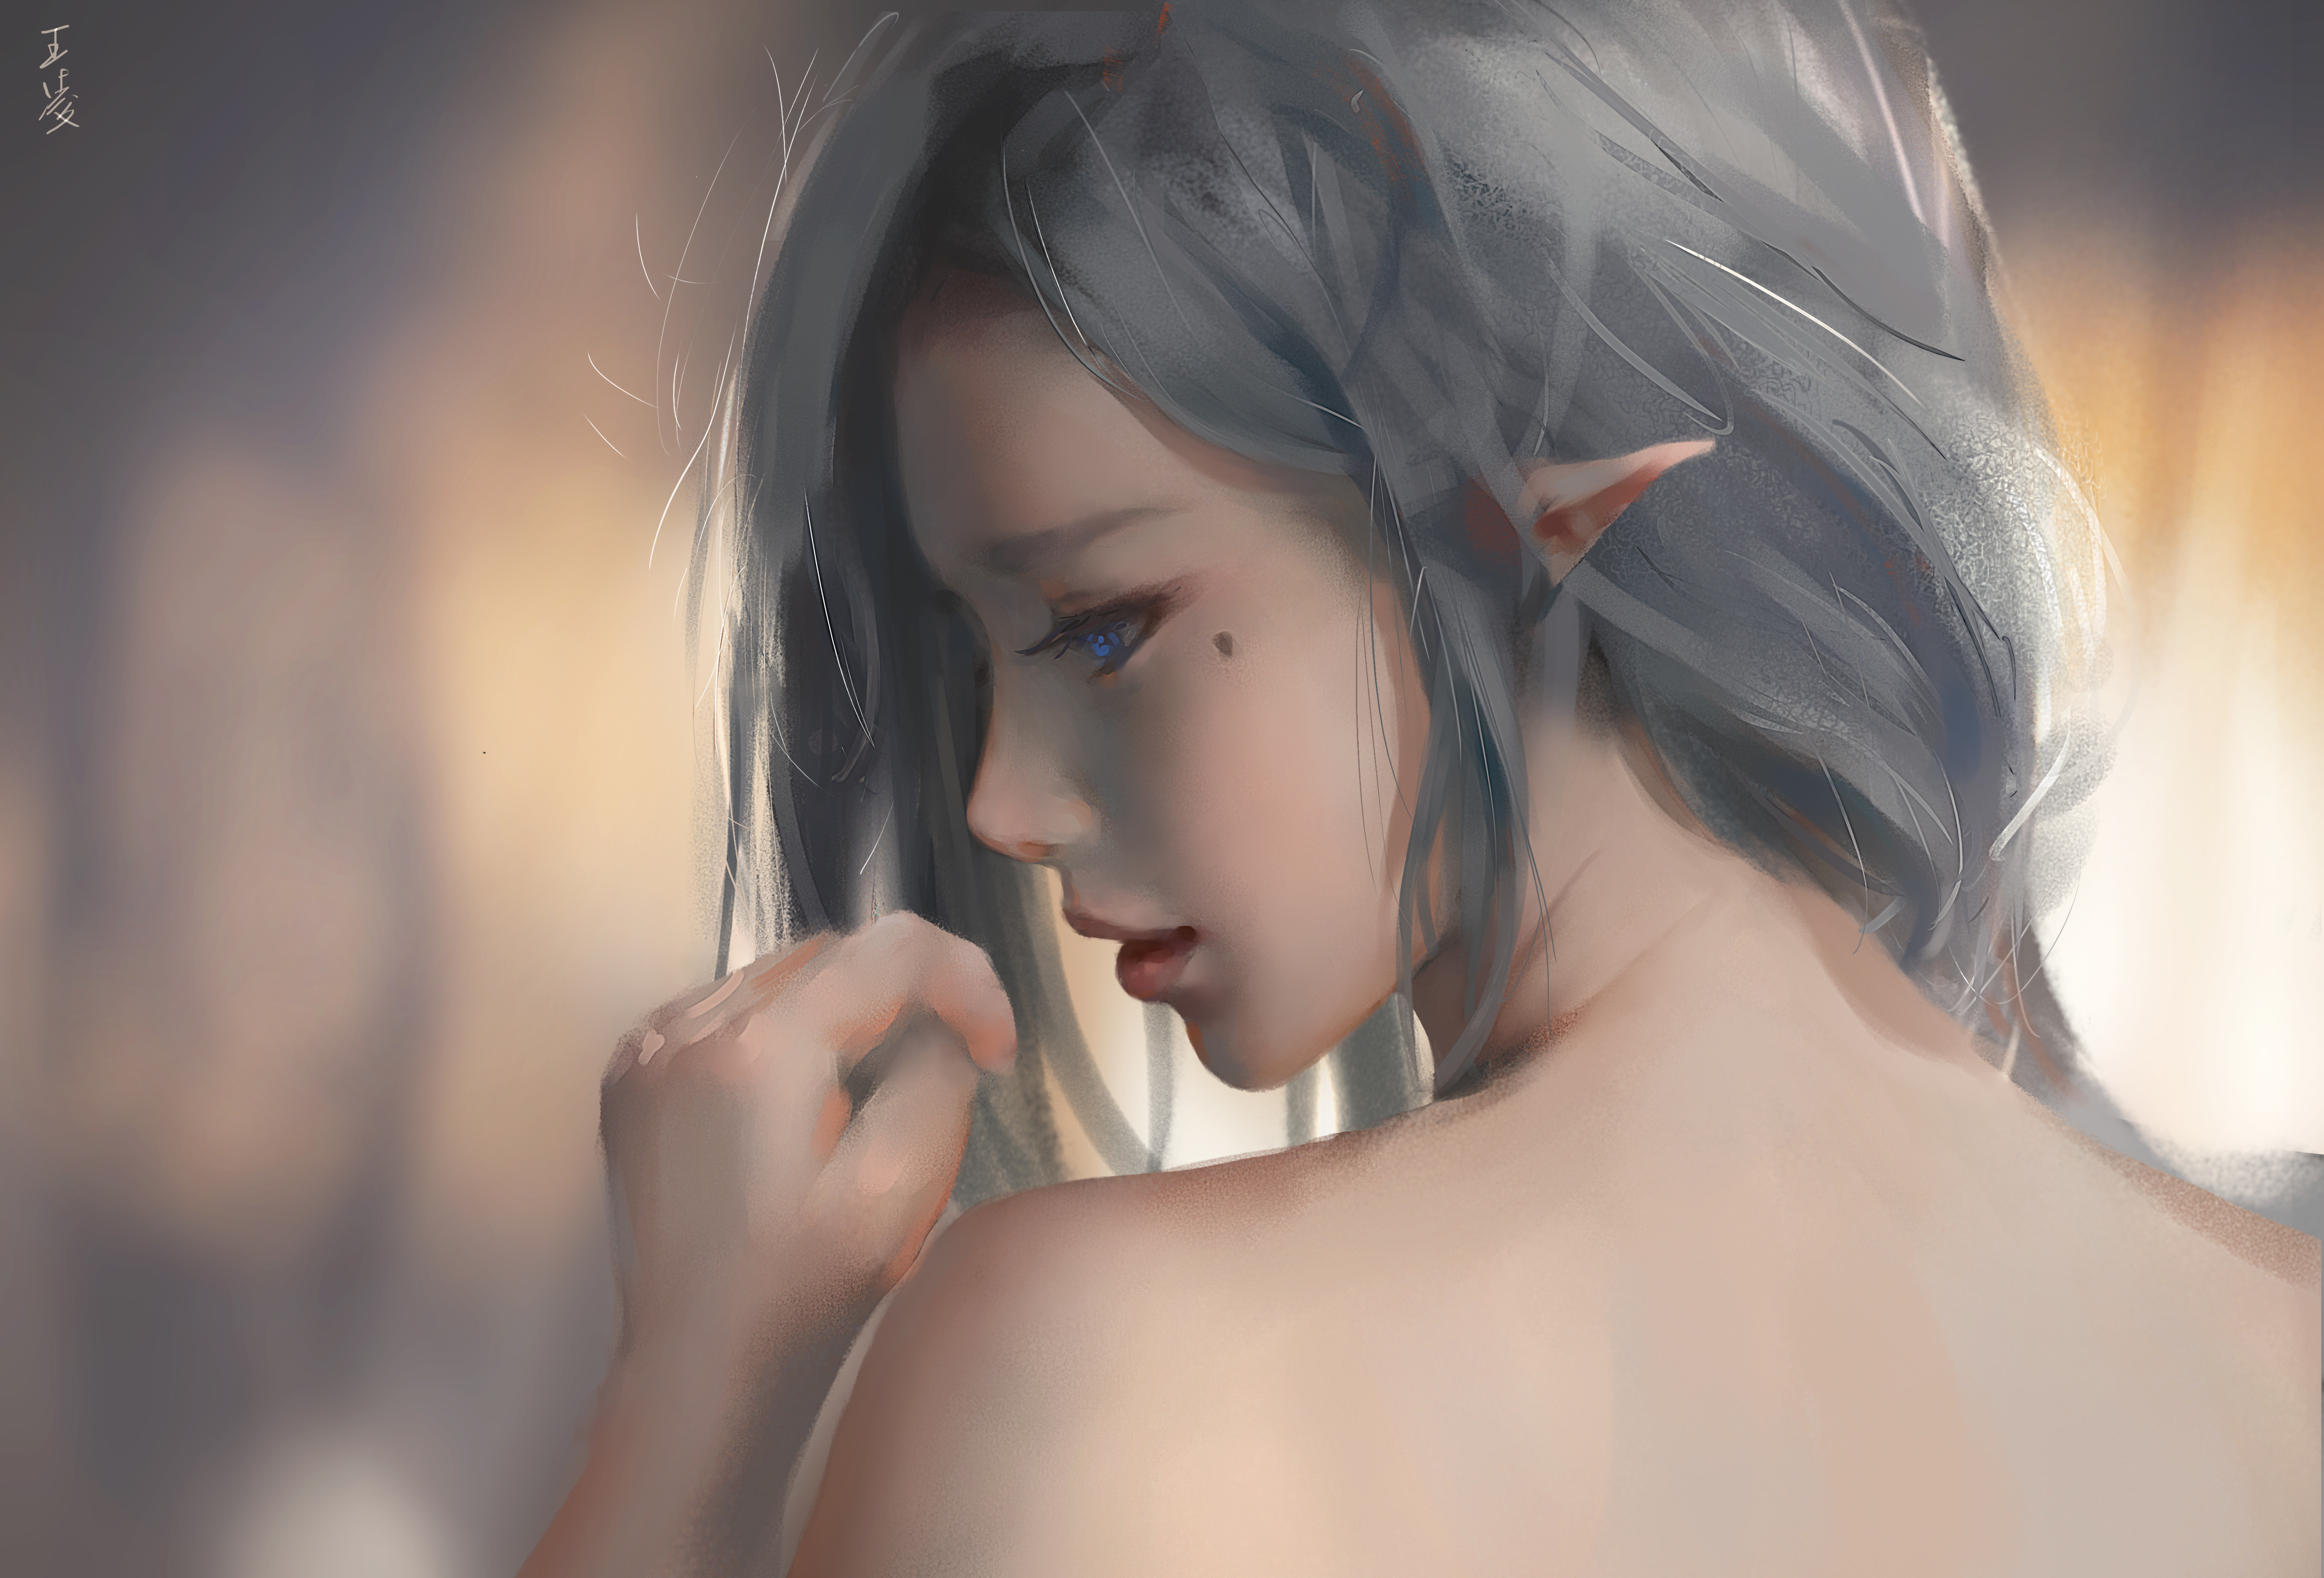 Anime 4996x3392 WLOP digital art artwork painting women anime girls Ghost Blade anime bare shoulders elven white hair blue eyes looking back fantasy art fantasy girl